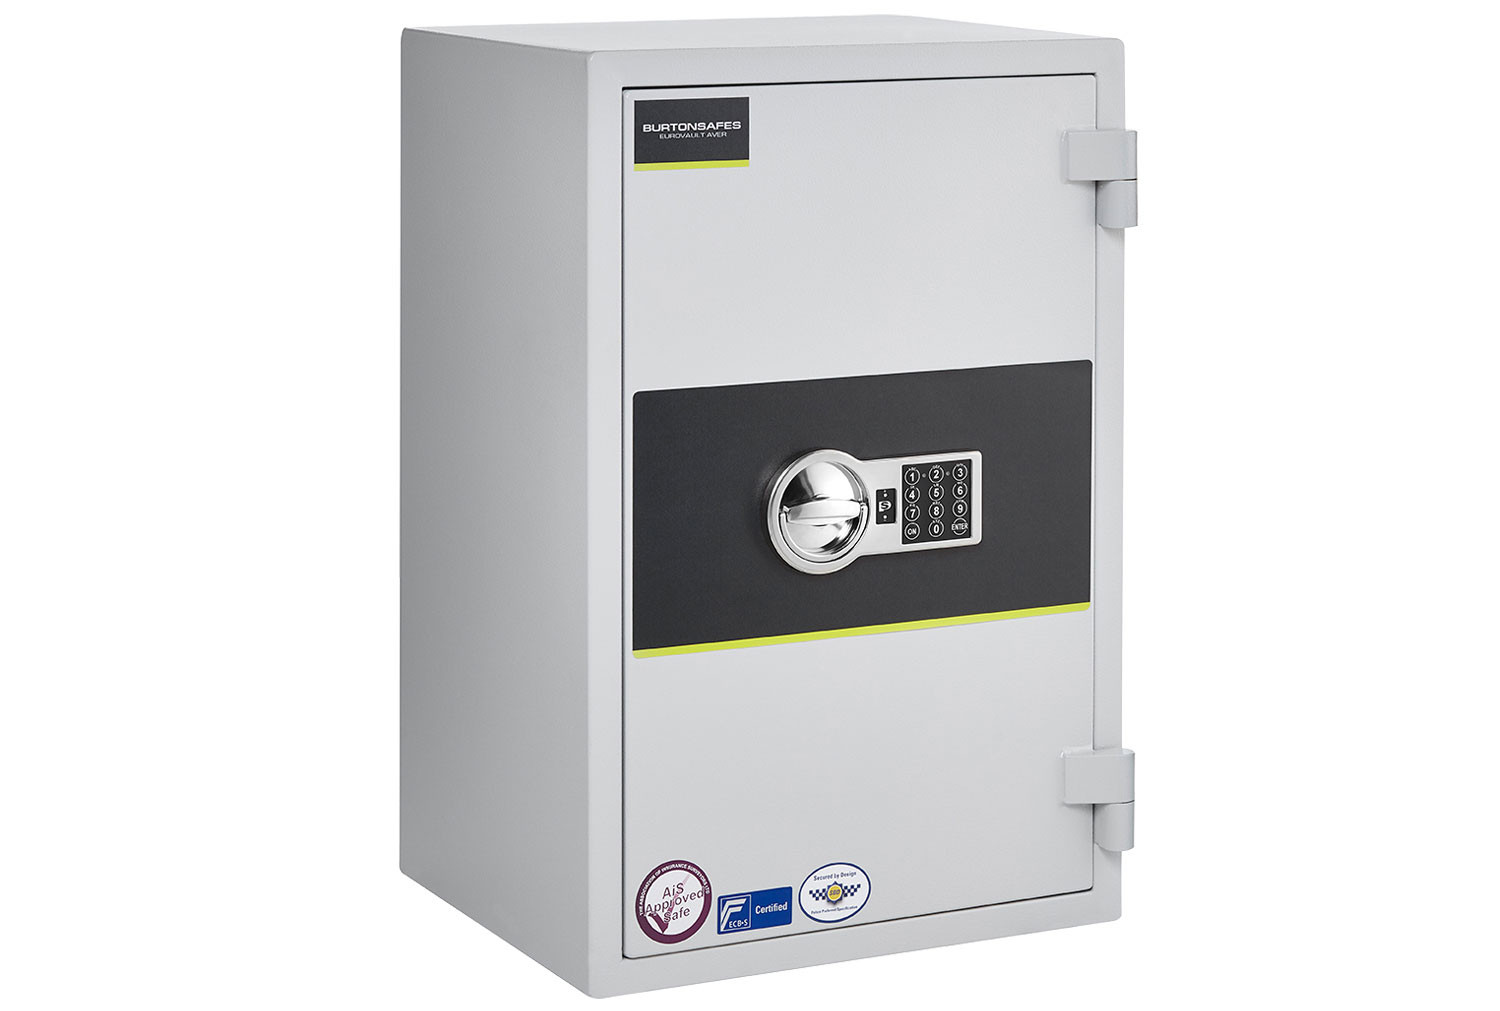 Burton Eurovault Aver Grade 0 Size 2 Safe With Electronic Lock (50ltrs)